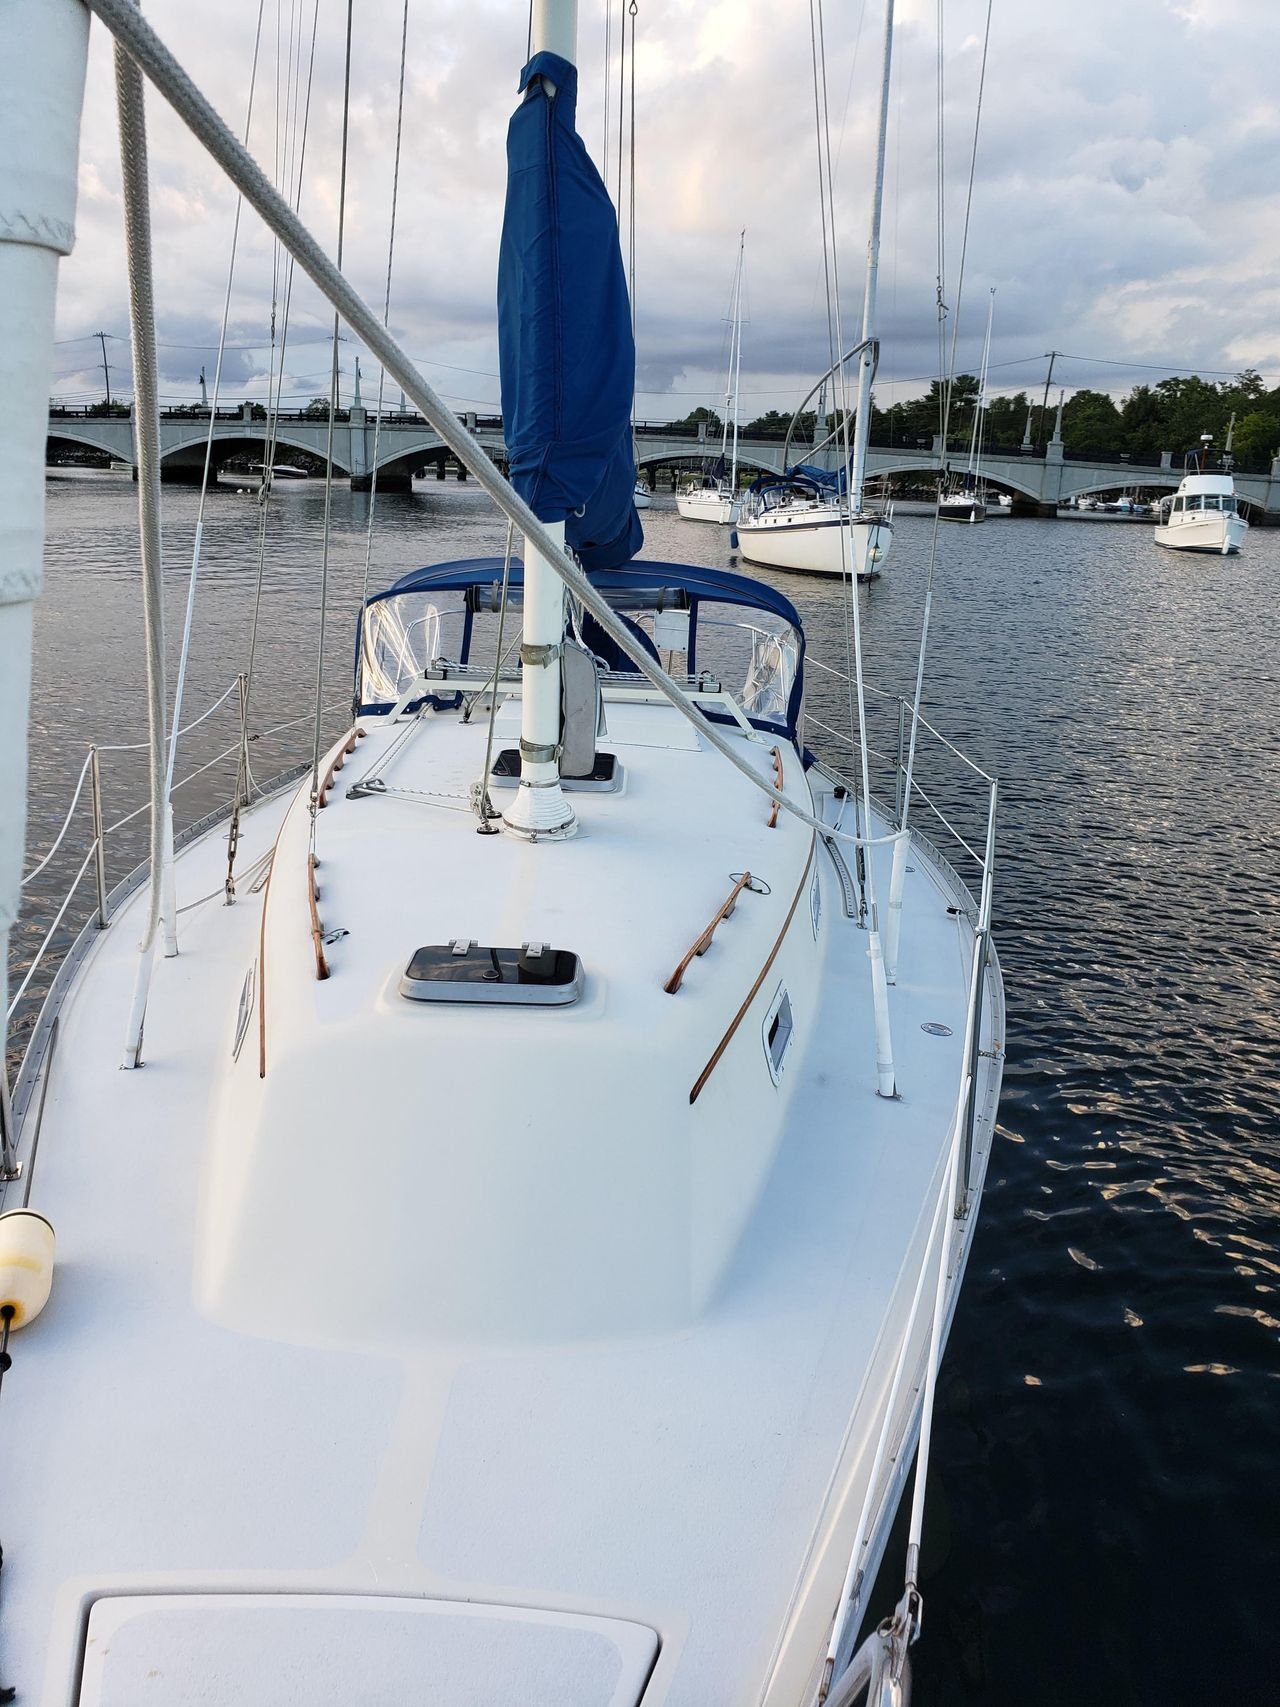 1984 Used Irwin Citation Sloop Sailboat For Sale - $12,500